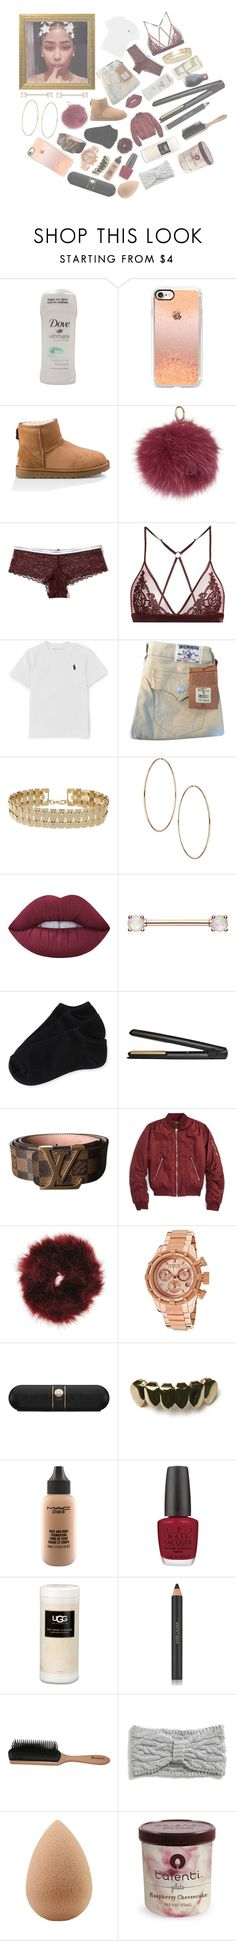 """"""" you α bαd αss bltch , you poppin """" by loyalty-x0 ❤ liked on Polyvore featuring Casetify, UGG, Harrods, Hollister Co., Fleur of England, True Religion, Miss Selfridge, Lime Crime, Aéropostale and GHD"""